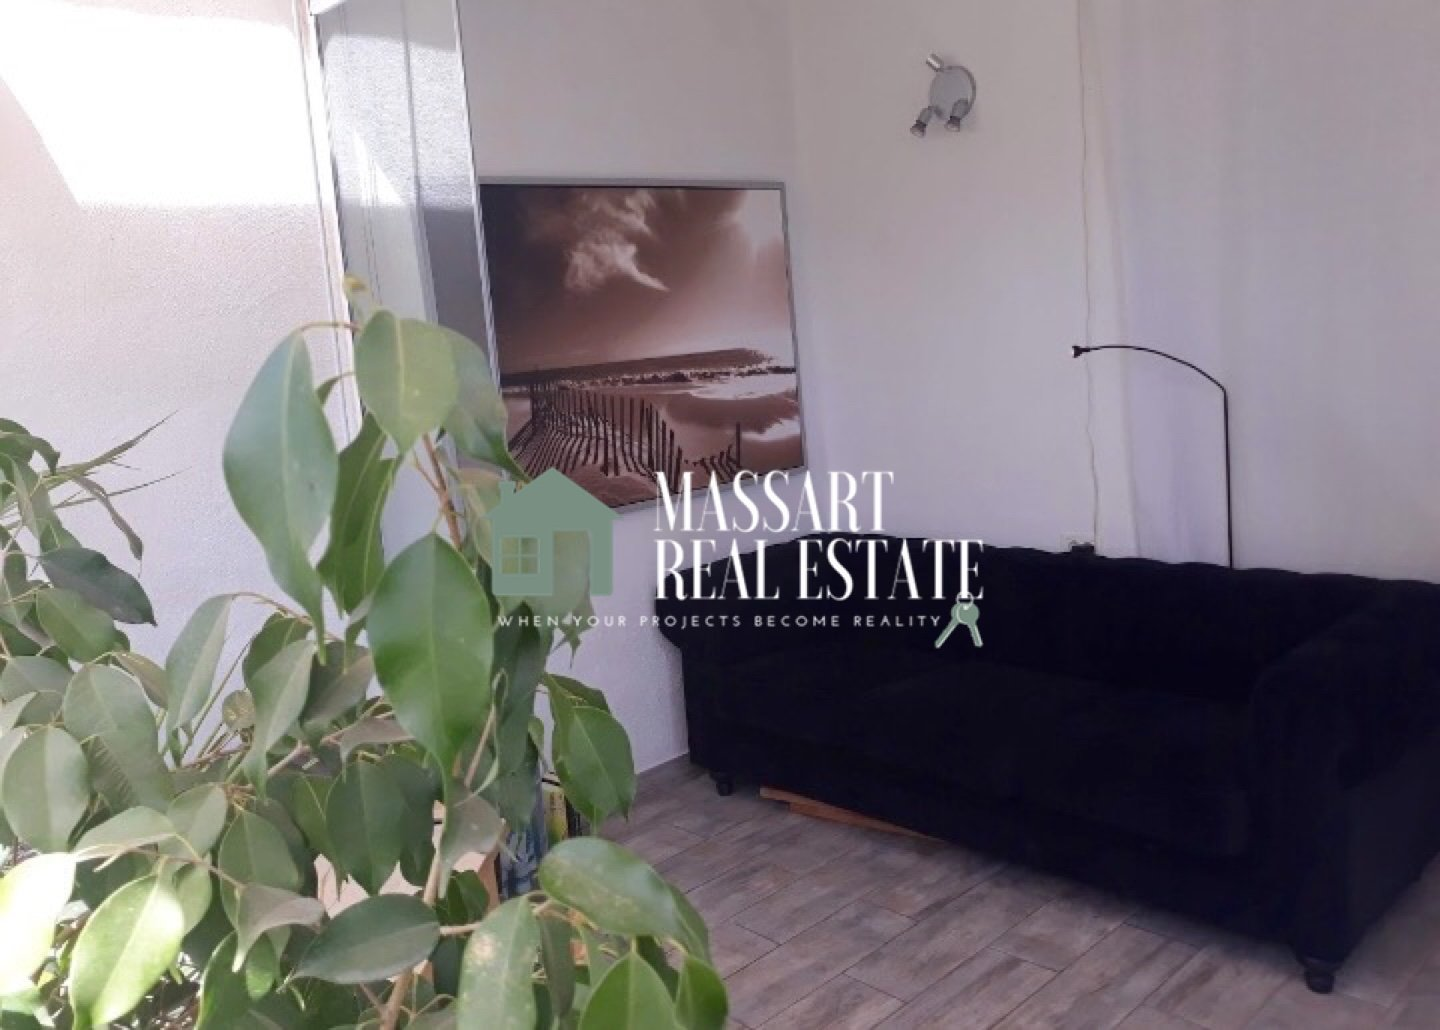 For sale in Costa del Silencio, 50 m2 apartment completely furnished and renovated.